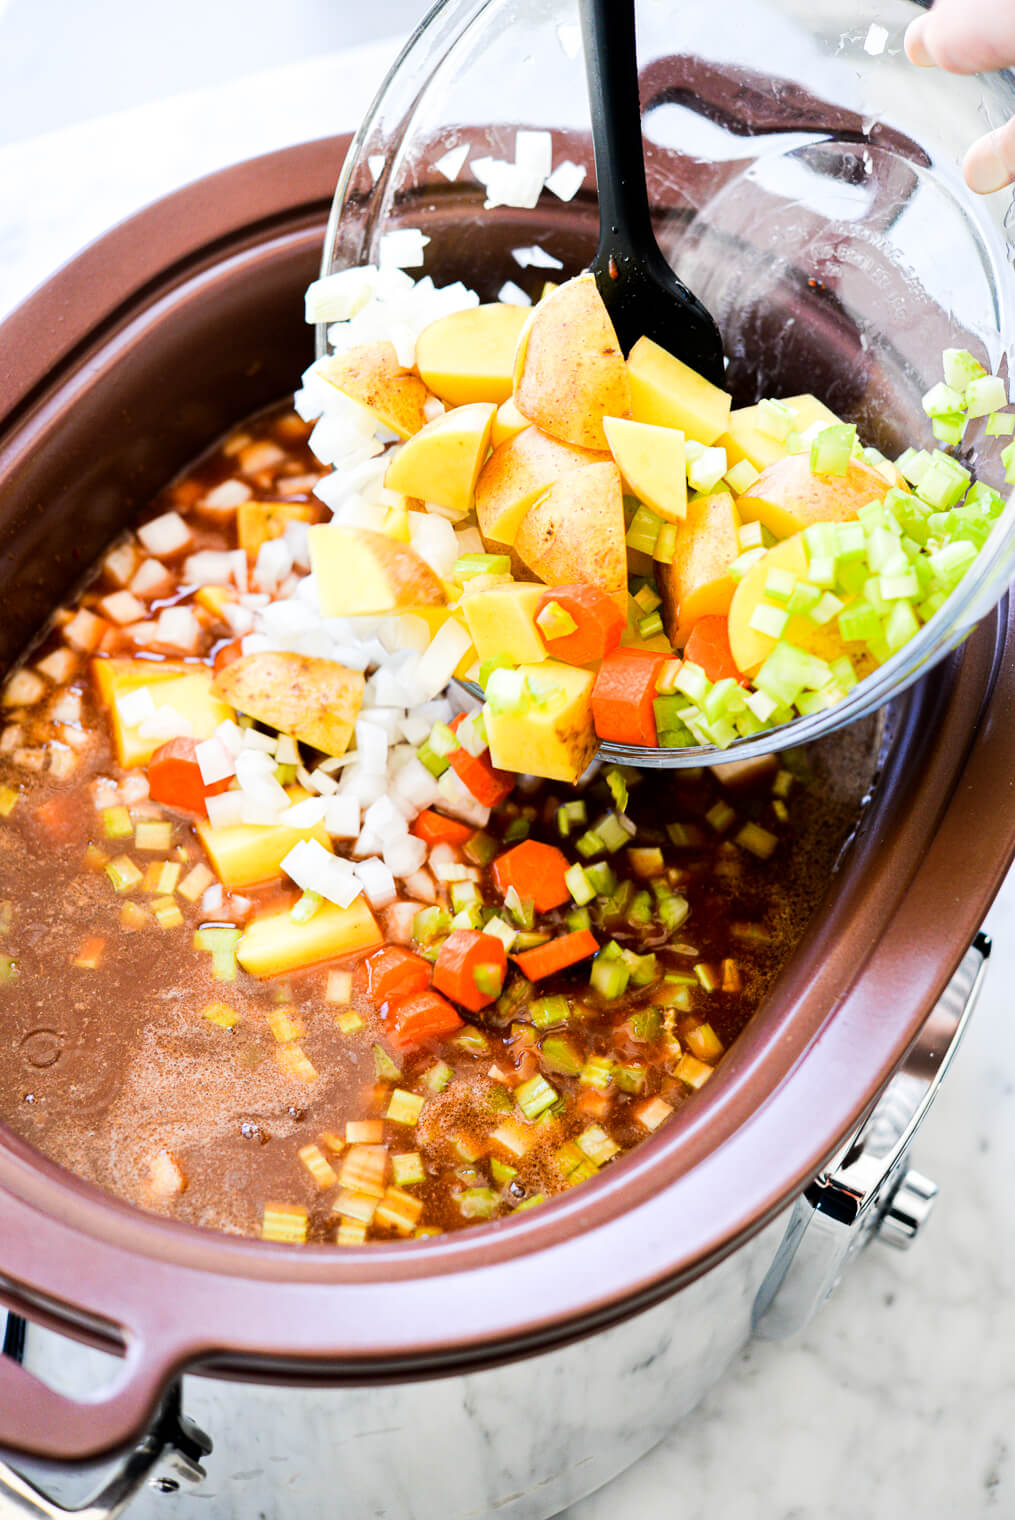 a large slow cooker of beef stew with someone pouring chopped stew veggies into the slow cooker